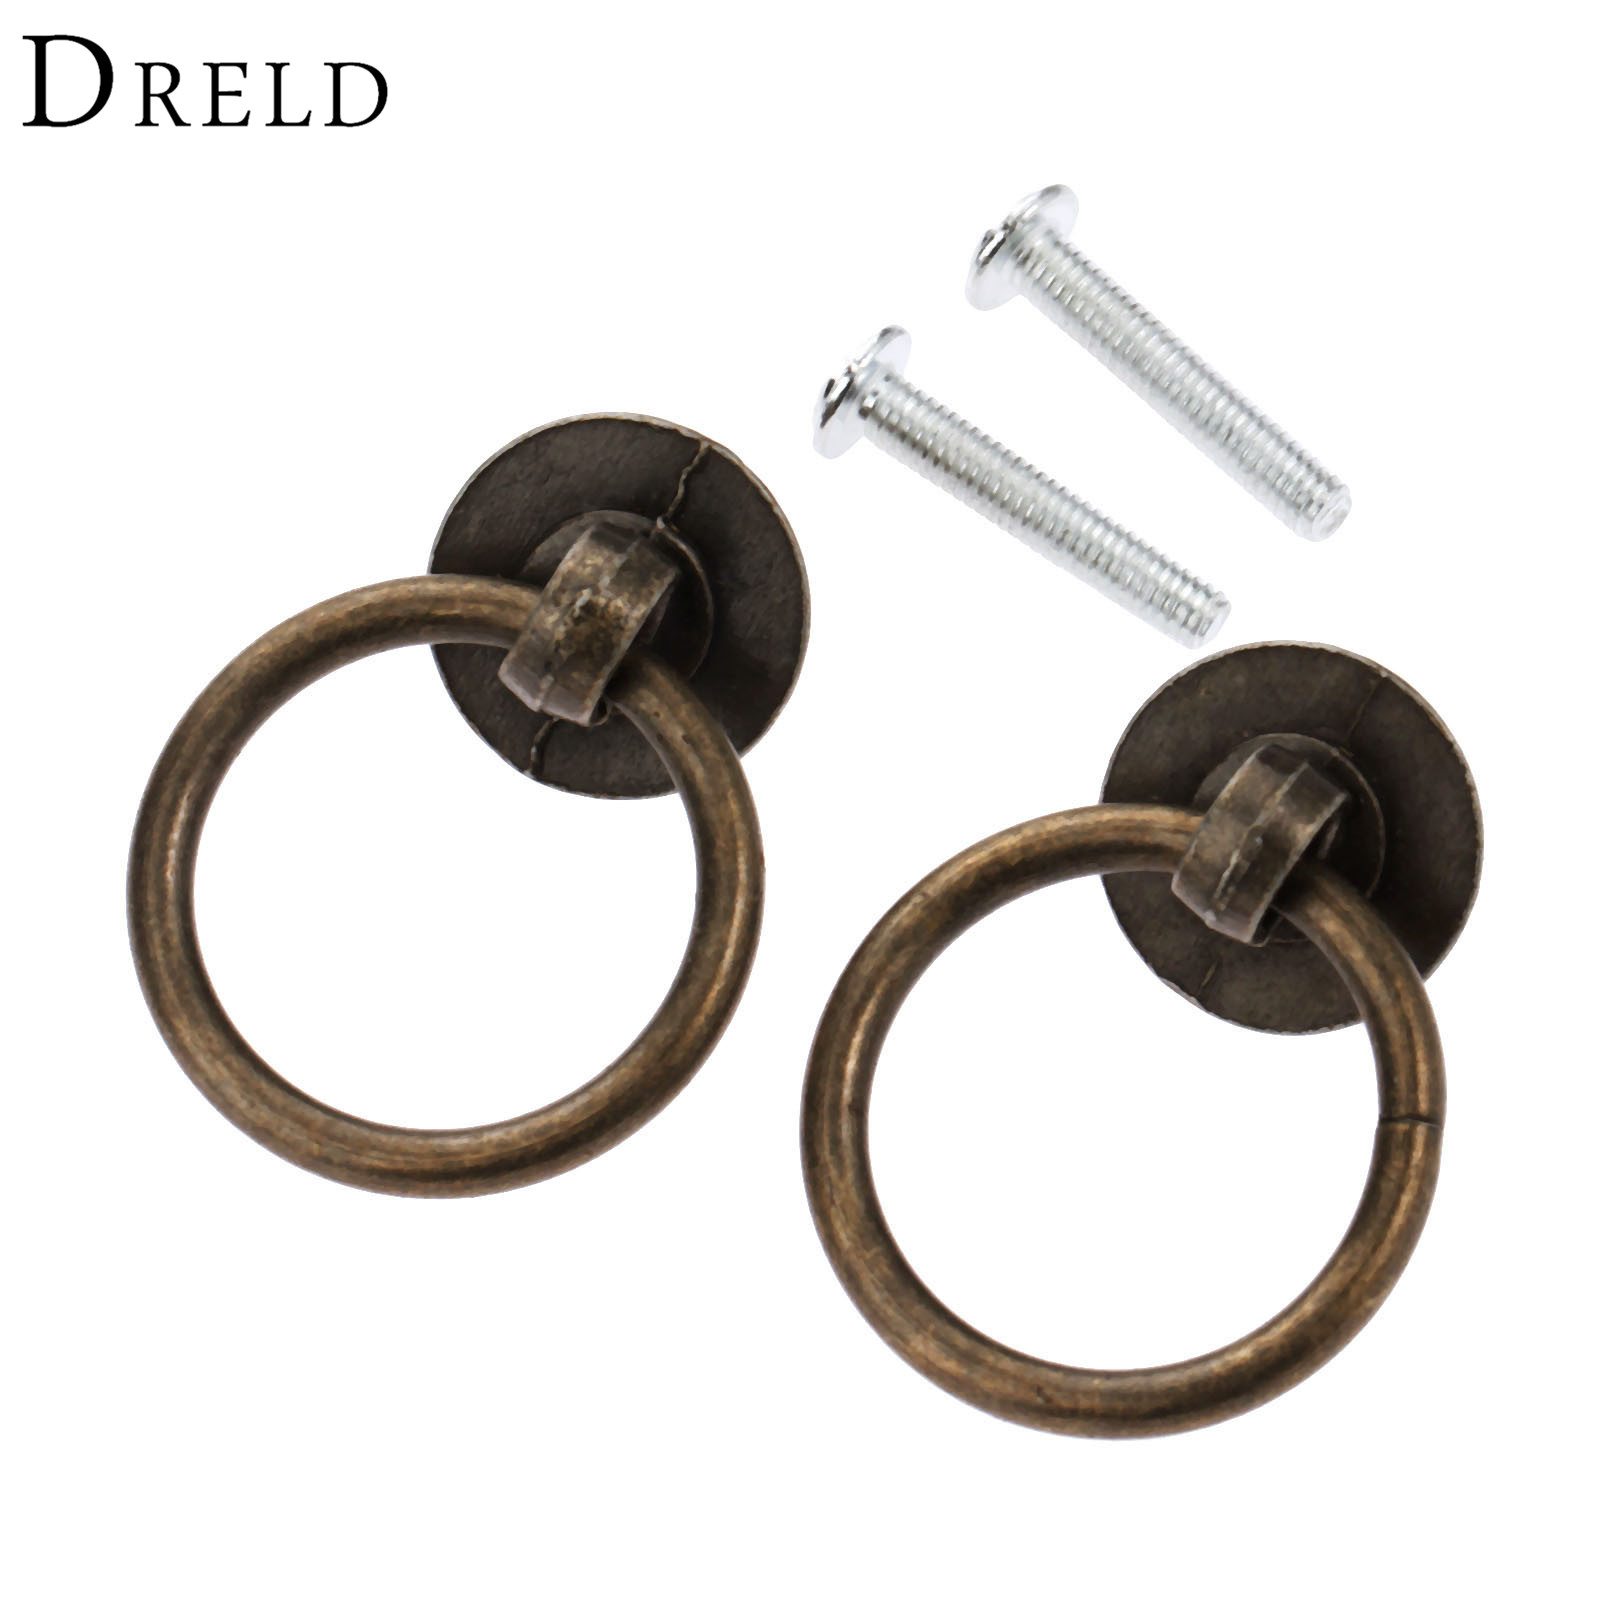 DRELD 2Pcs Vintage Furniture Handle Kitchen Cabinets Pull Handle Knobs Drawer Wardrobe Cupboard Door Ring Bronze Tone 40*30mm 1 pair 96mm vintage furniture cupboard wardrobe handles and knobs antique bronze alloy kitchen cabinet door drawer pull handle